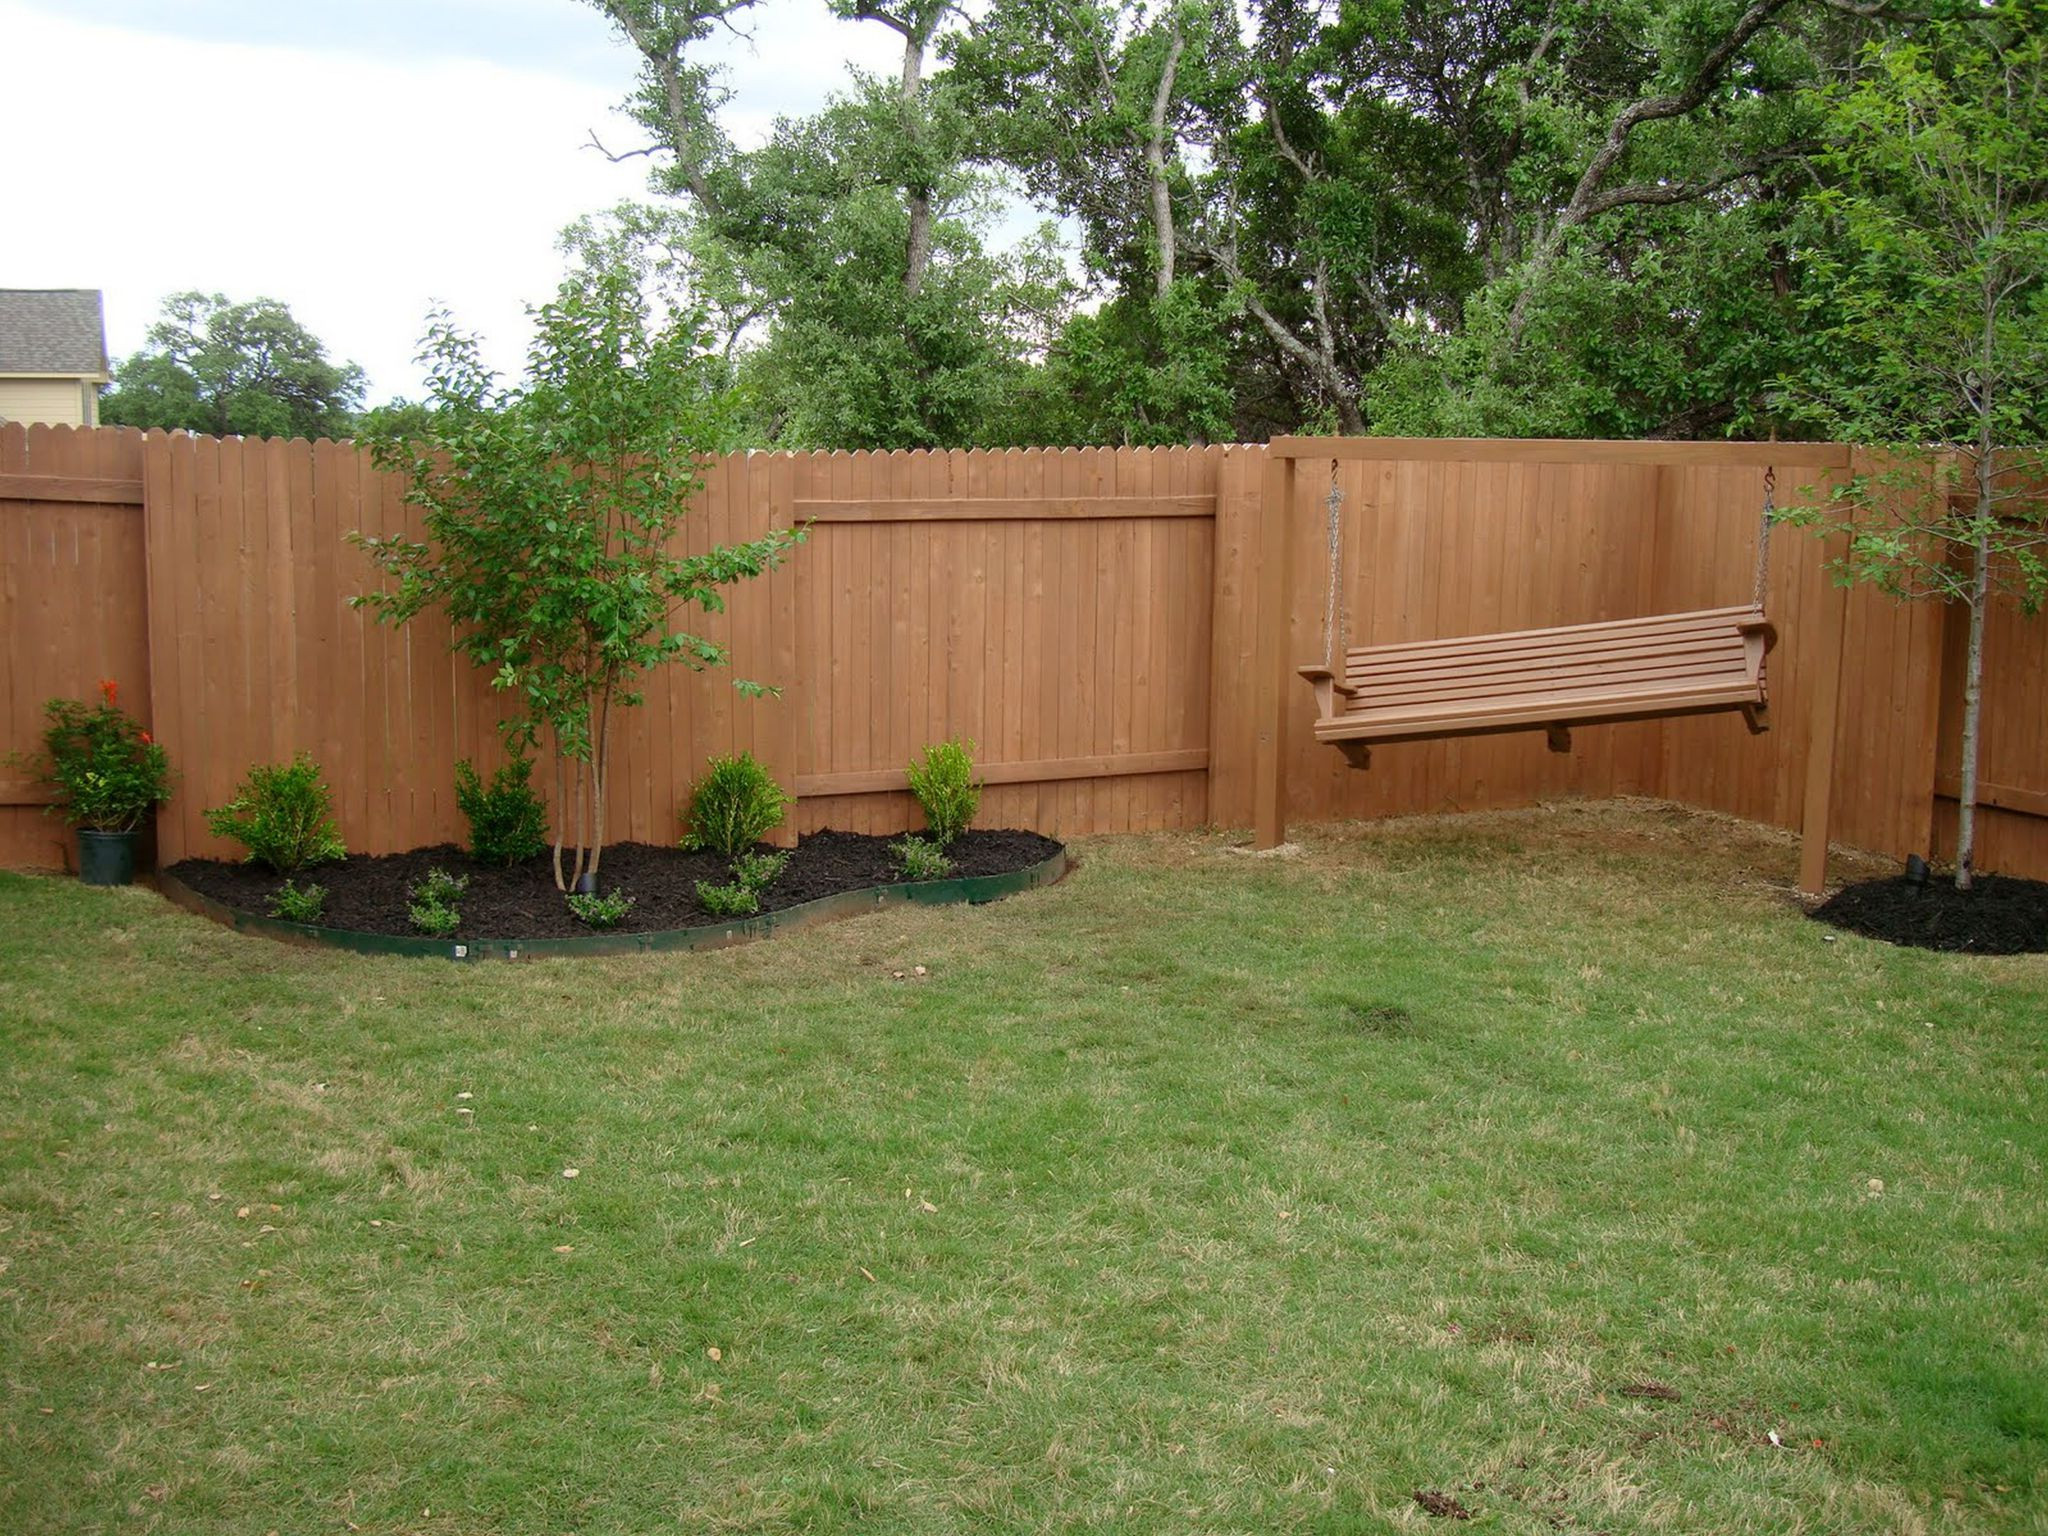 Fence Pictures For Backyard  Some Helpful Cheap Backyard Fence Ideas Using the Recycle